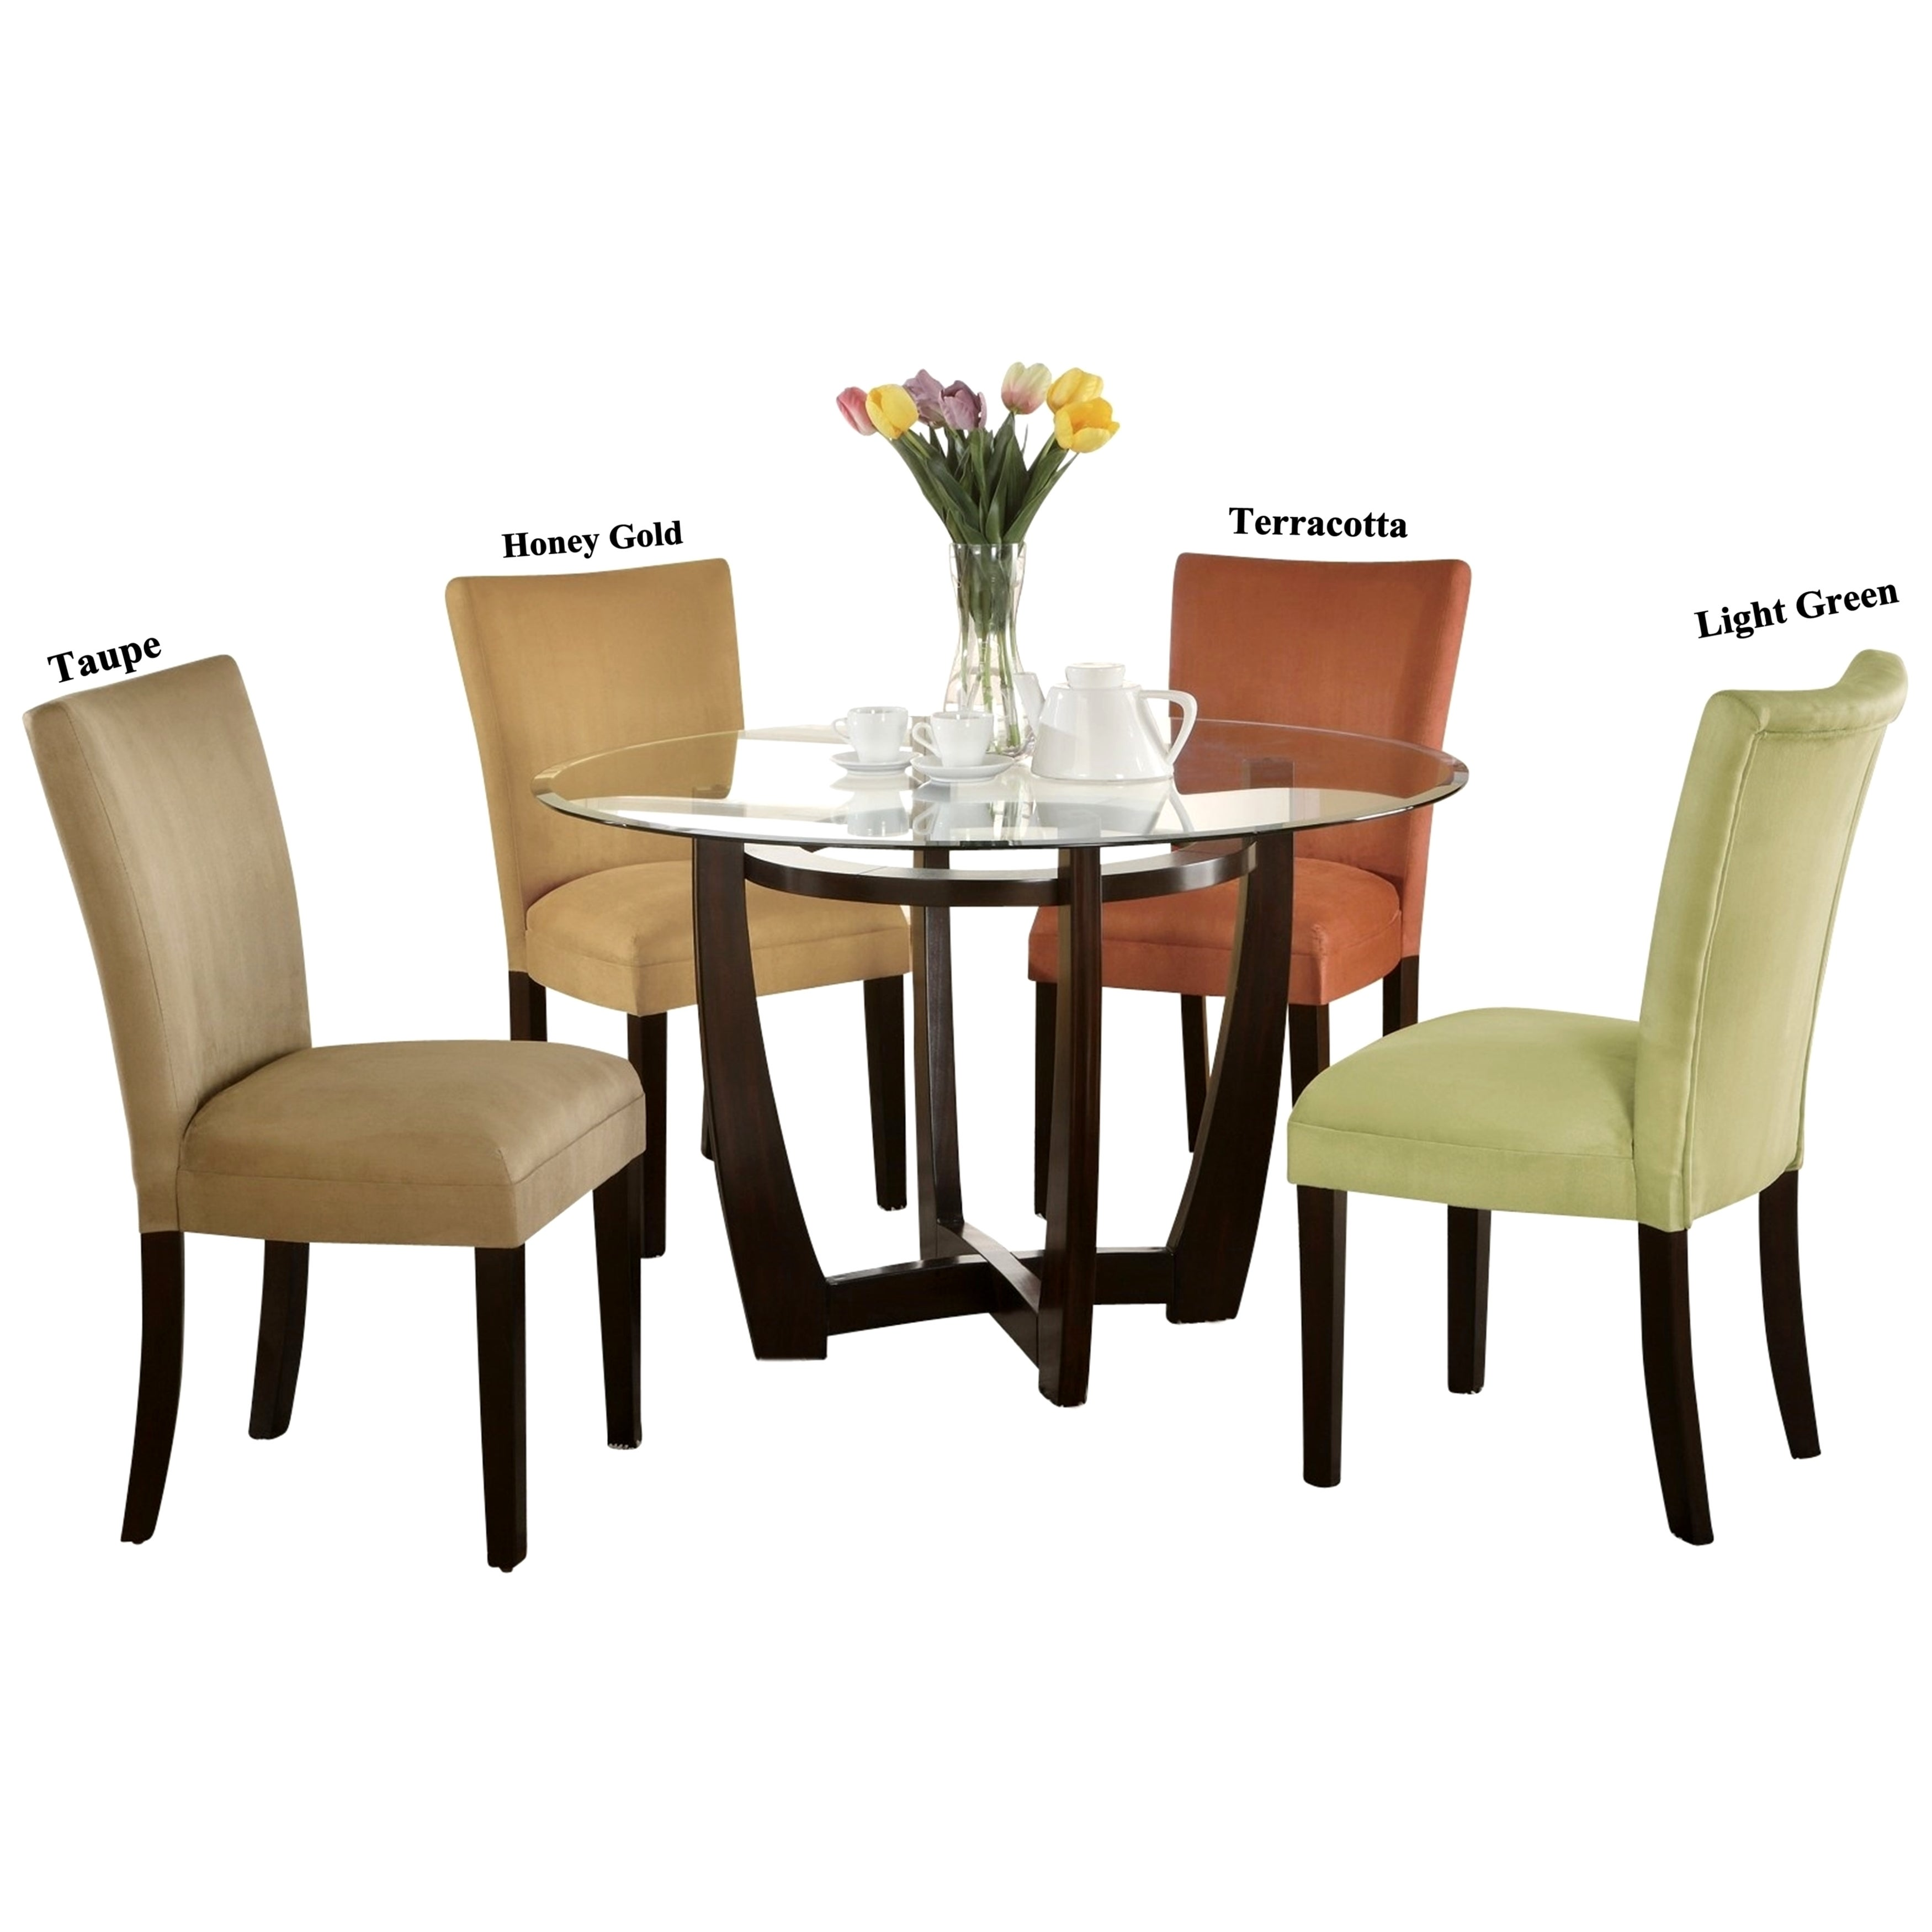 Mirage Round Glass Top Table Microfiber Parson Chairs